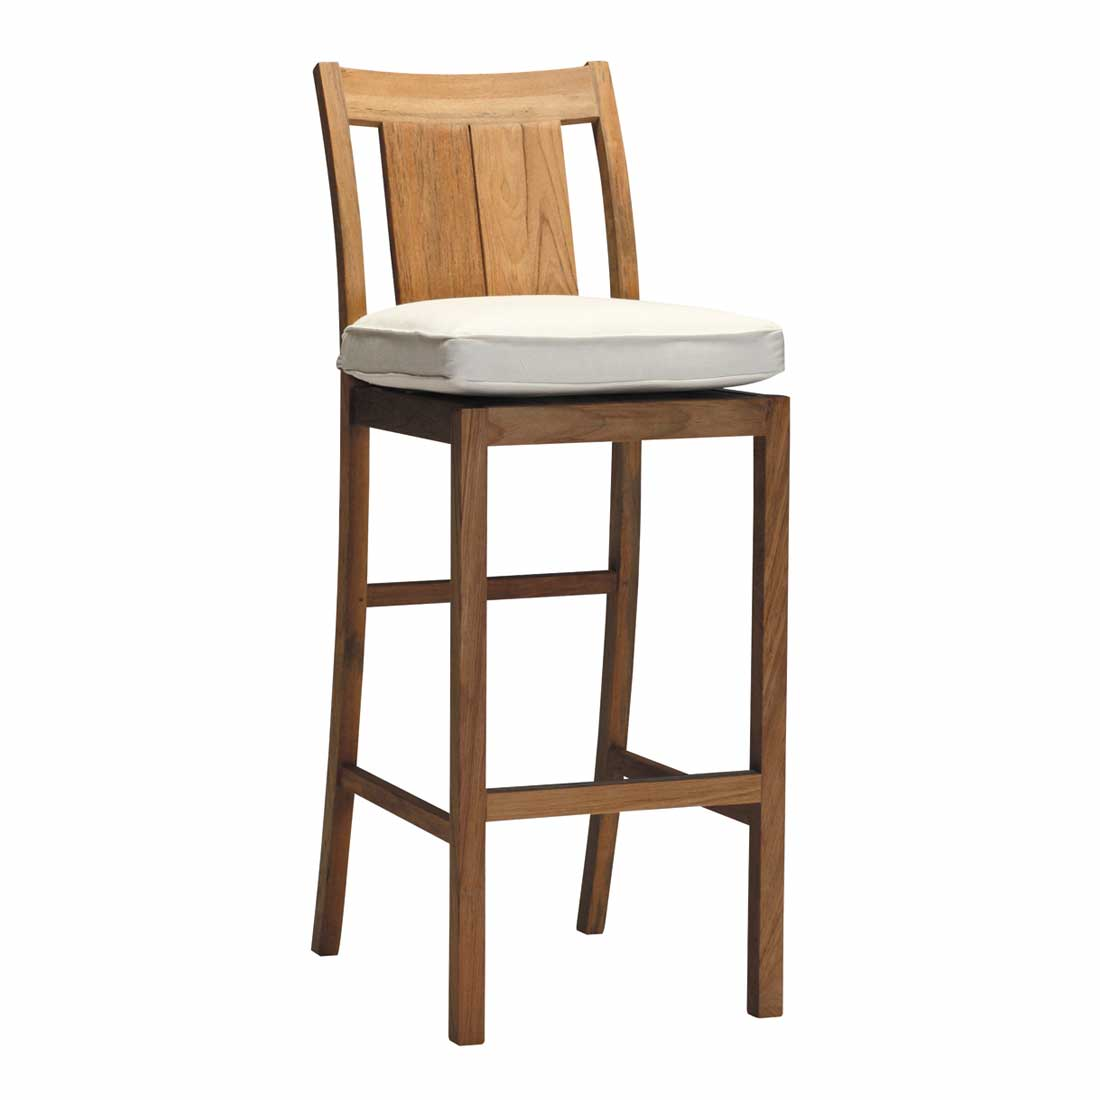 Croquet Outdoor Teak Bar Stool